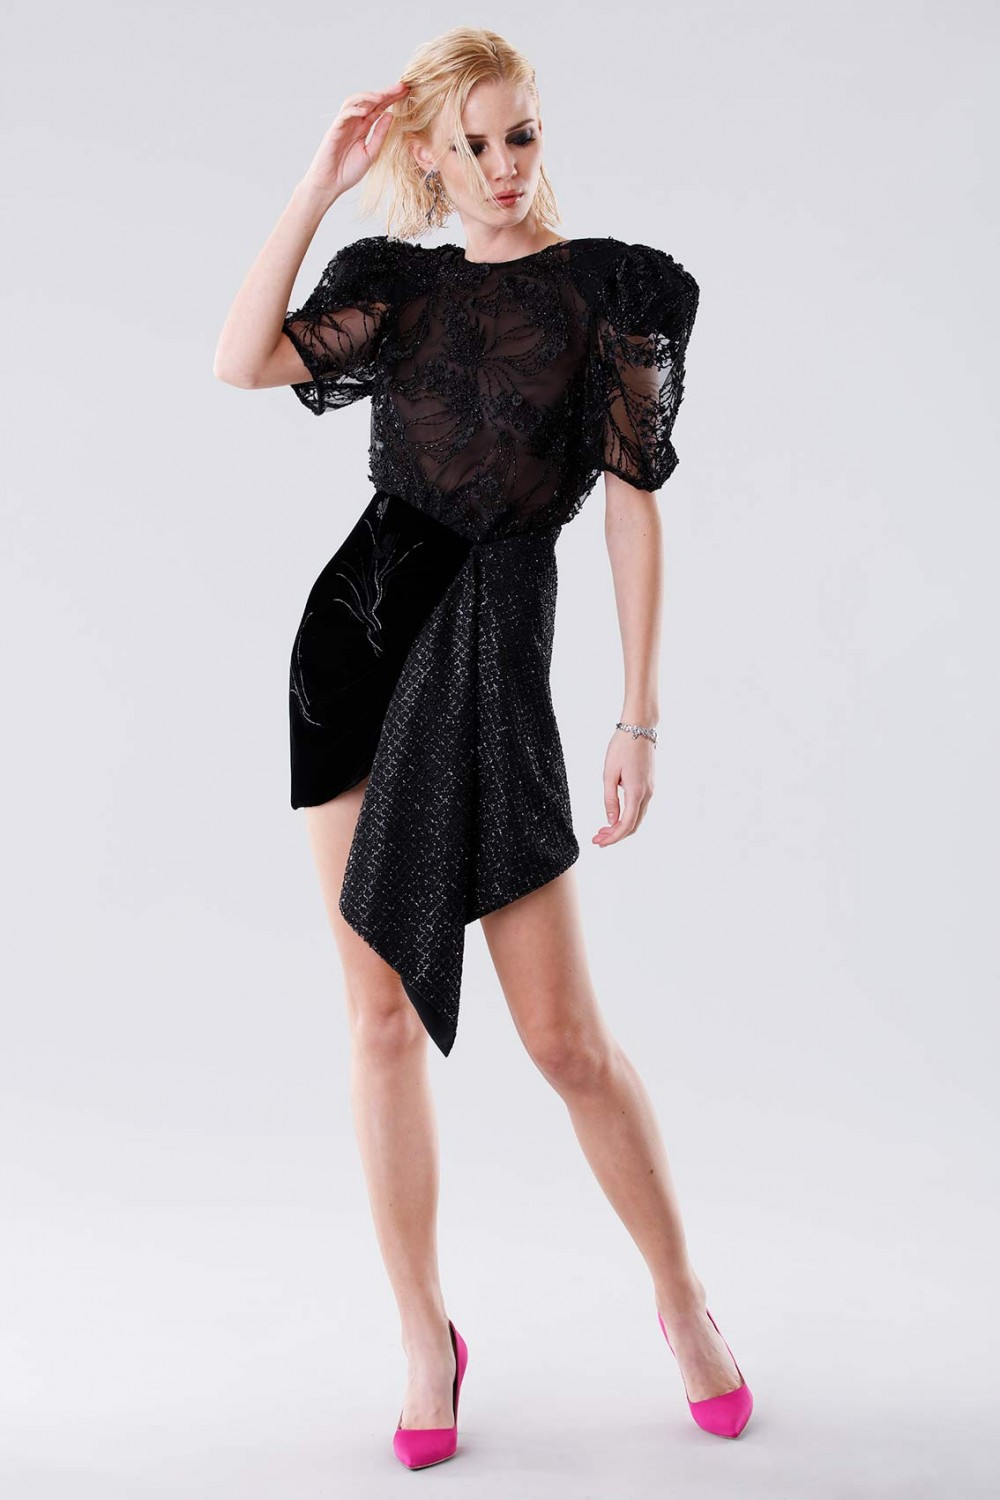 Black dress with sequins and side slit